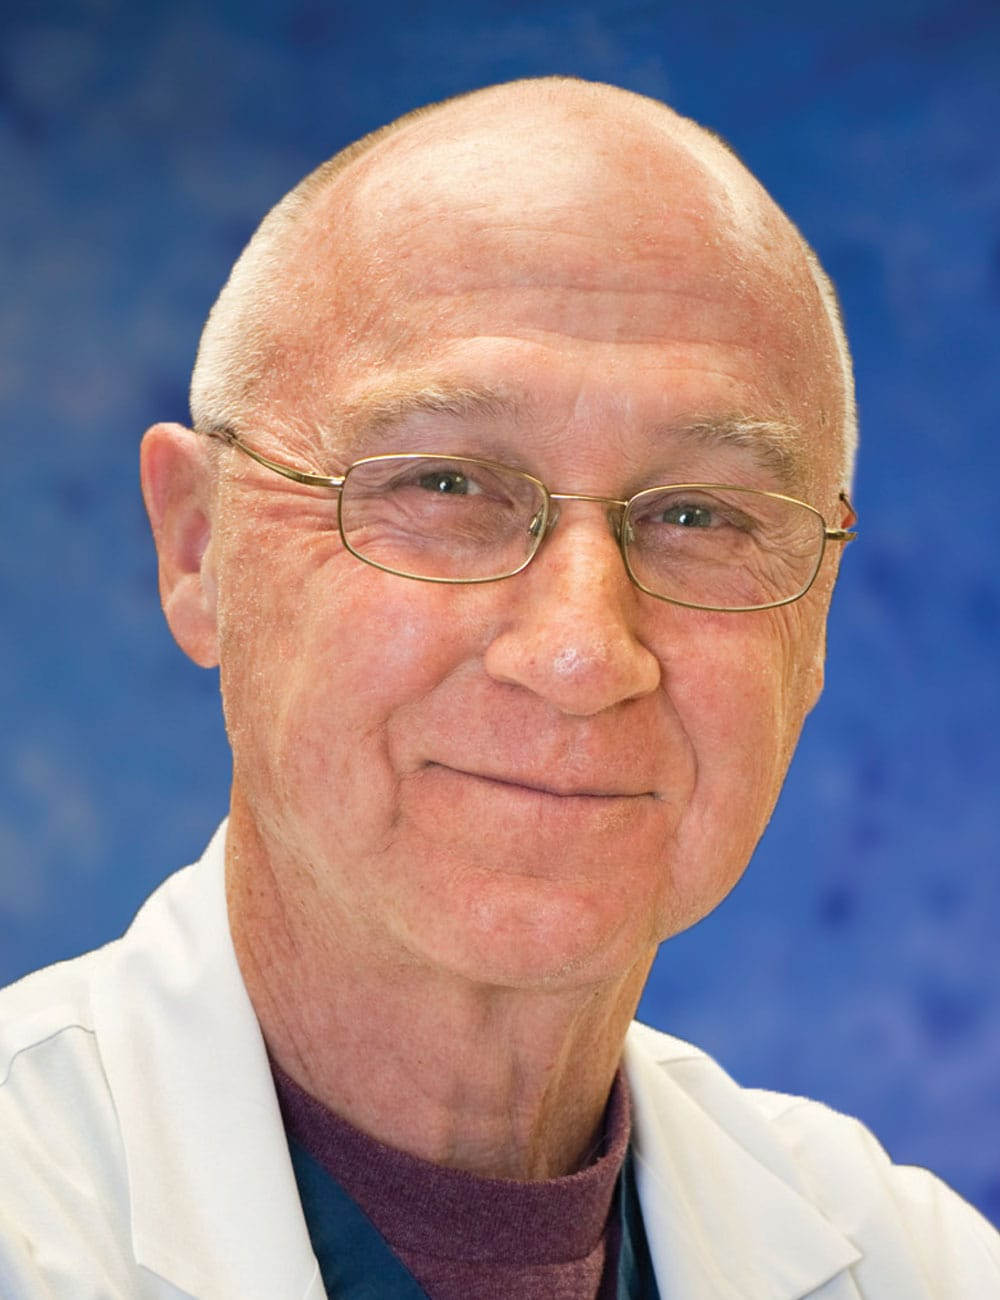 George M. Krisle, MD